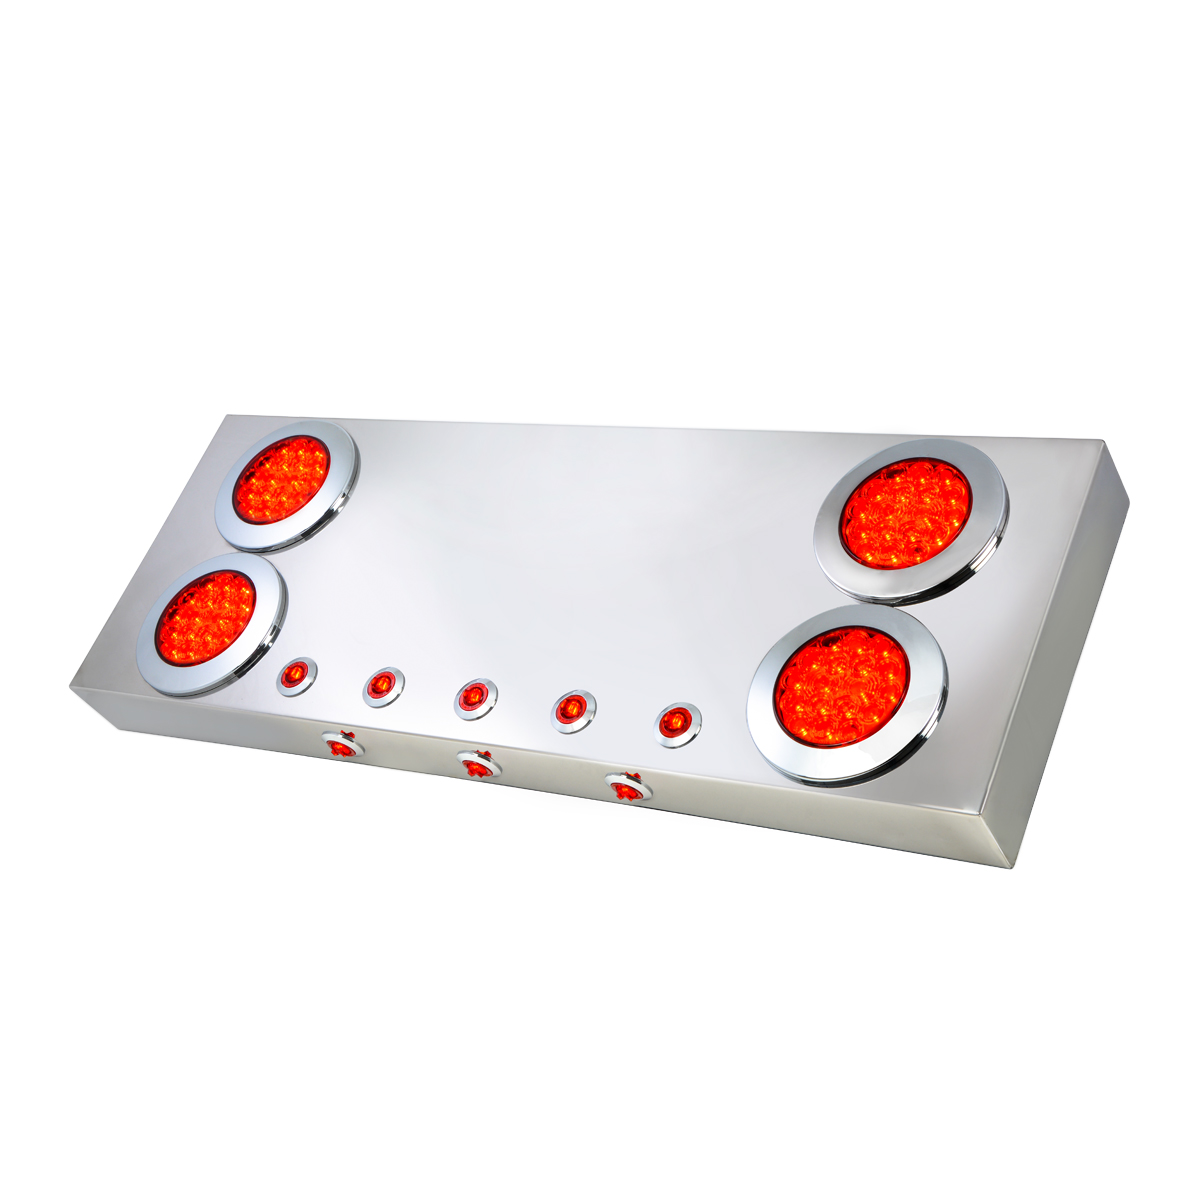 "Stainless Steel Rear Center Light Panel with 4"" & 1"" LEDs and Under Glow Effect"